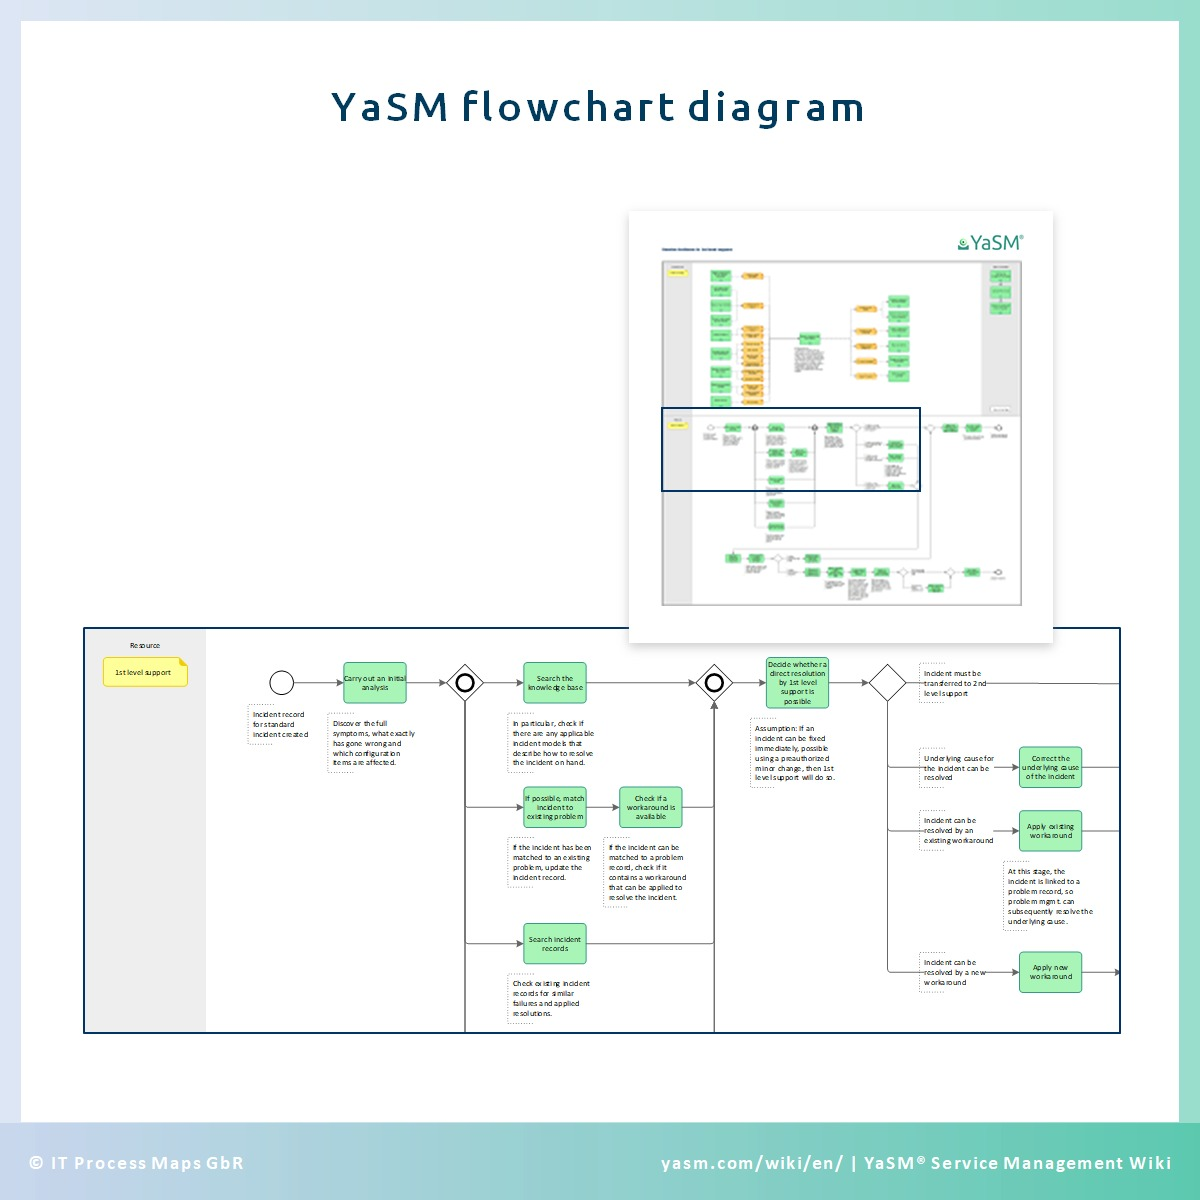 YaSM flowchart diagrams depicting the activities in the service management processes.